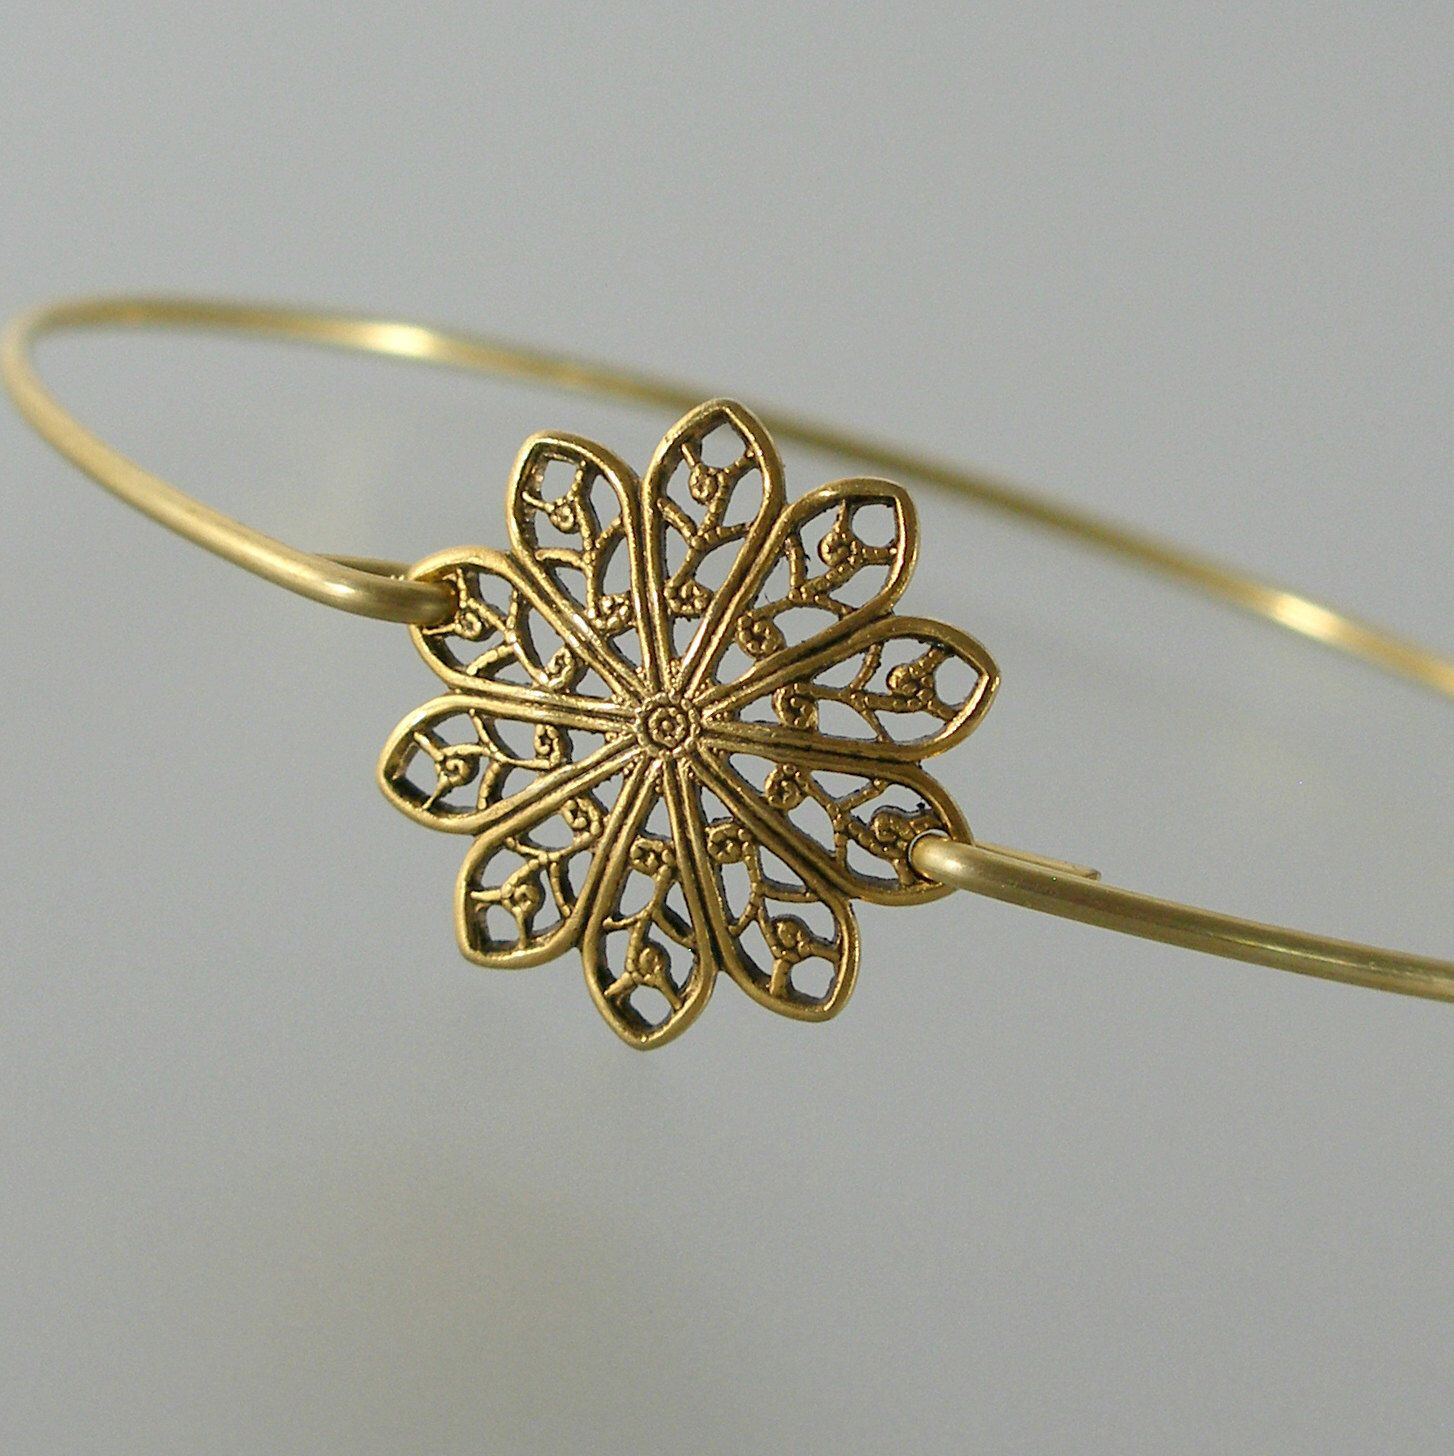 Gold round filigree bangle bracelet gold bangle bracelet gold